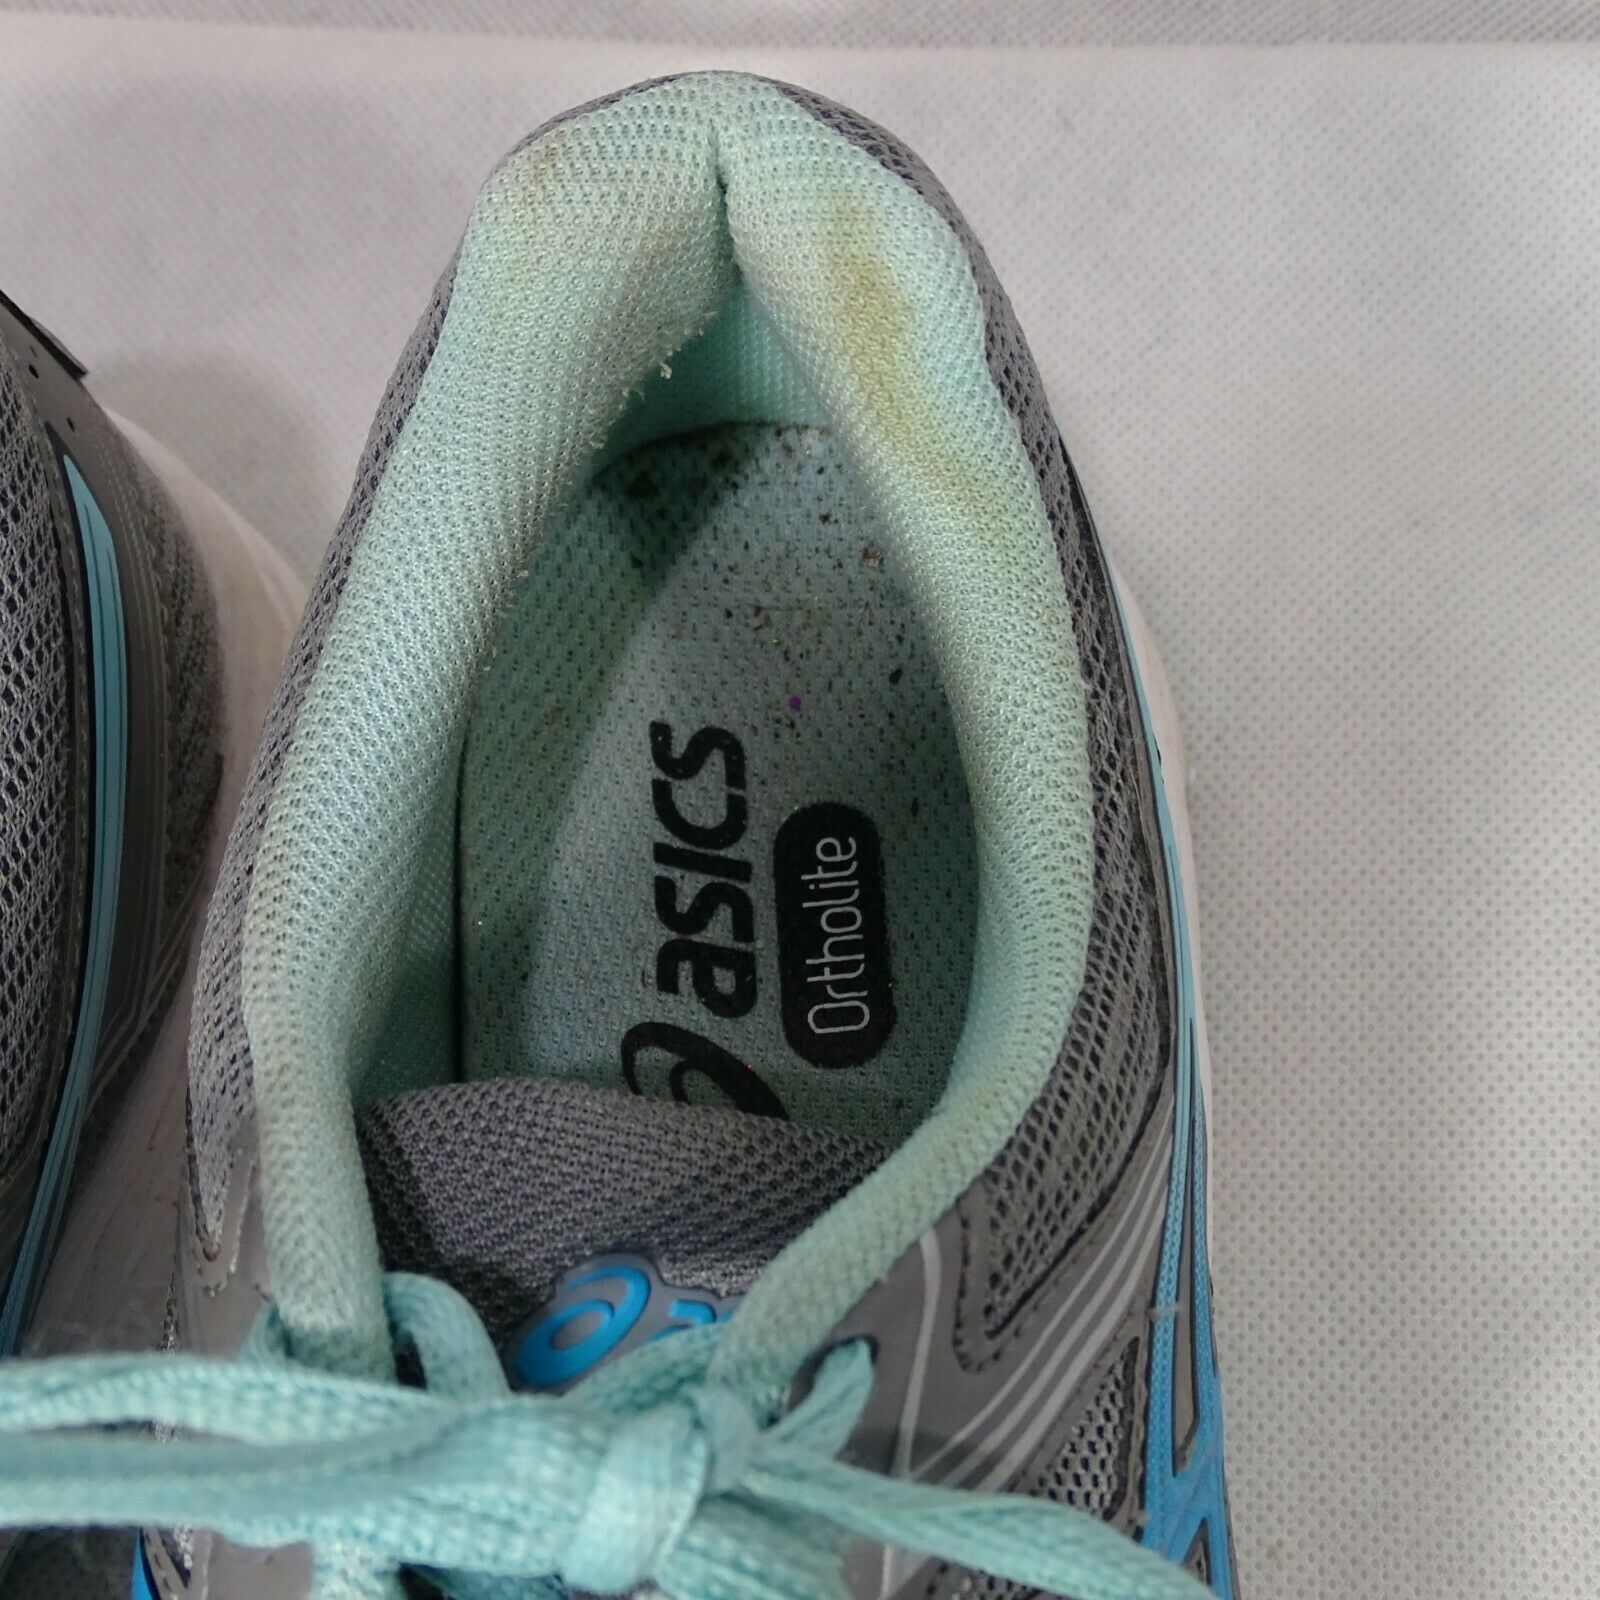 Asics Gel-Contend 4 Ortholite Sneakers Shoes Mesh Women Size 7 Gray Blue T767Q image 7